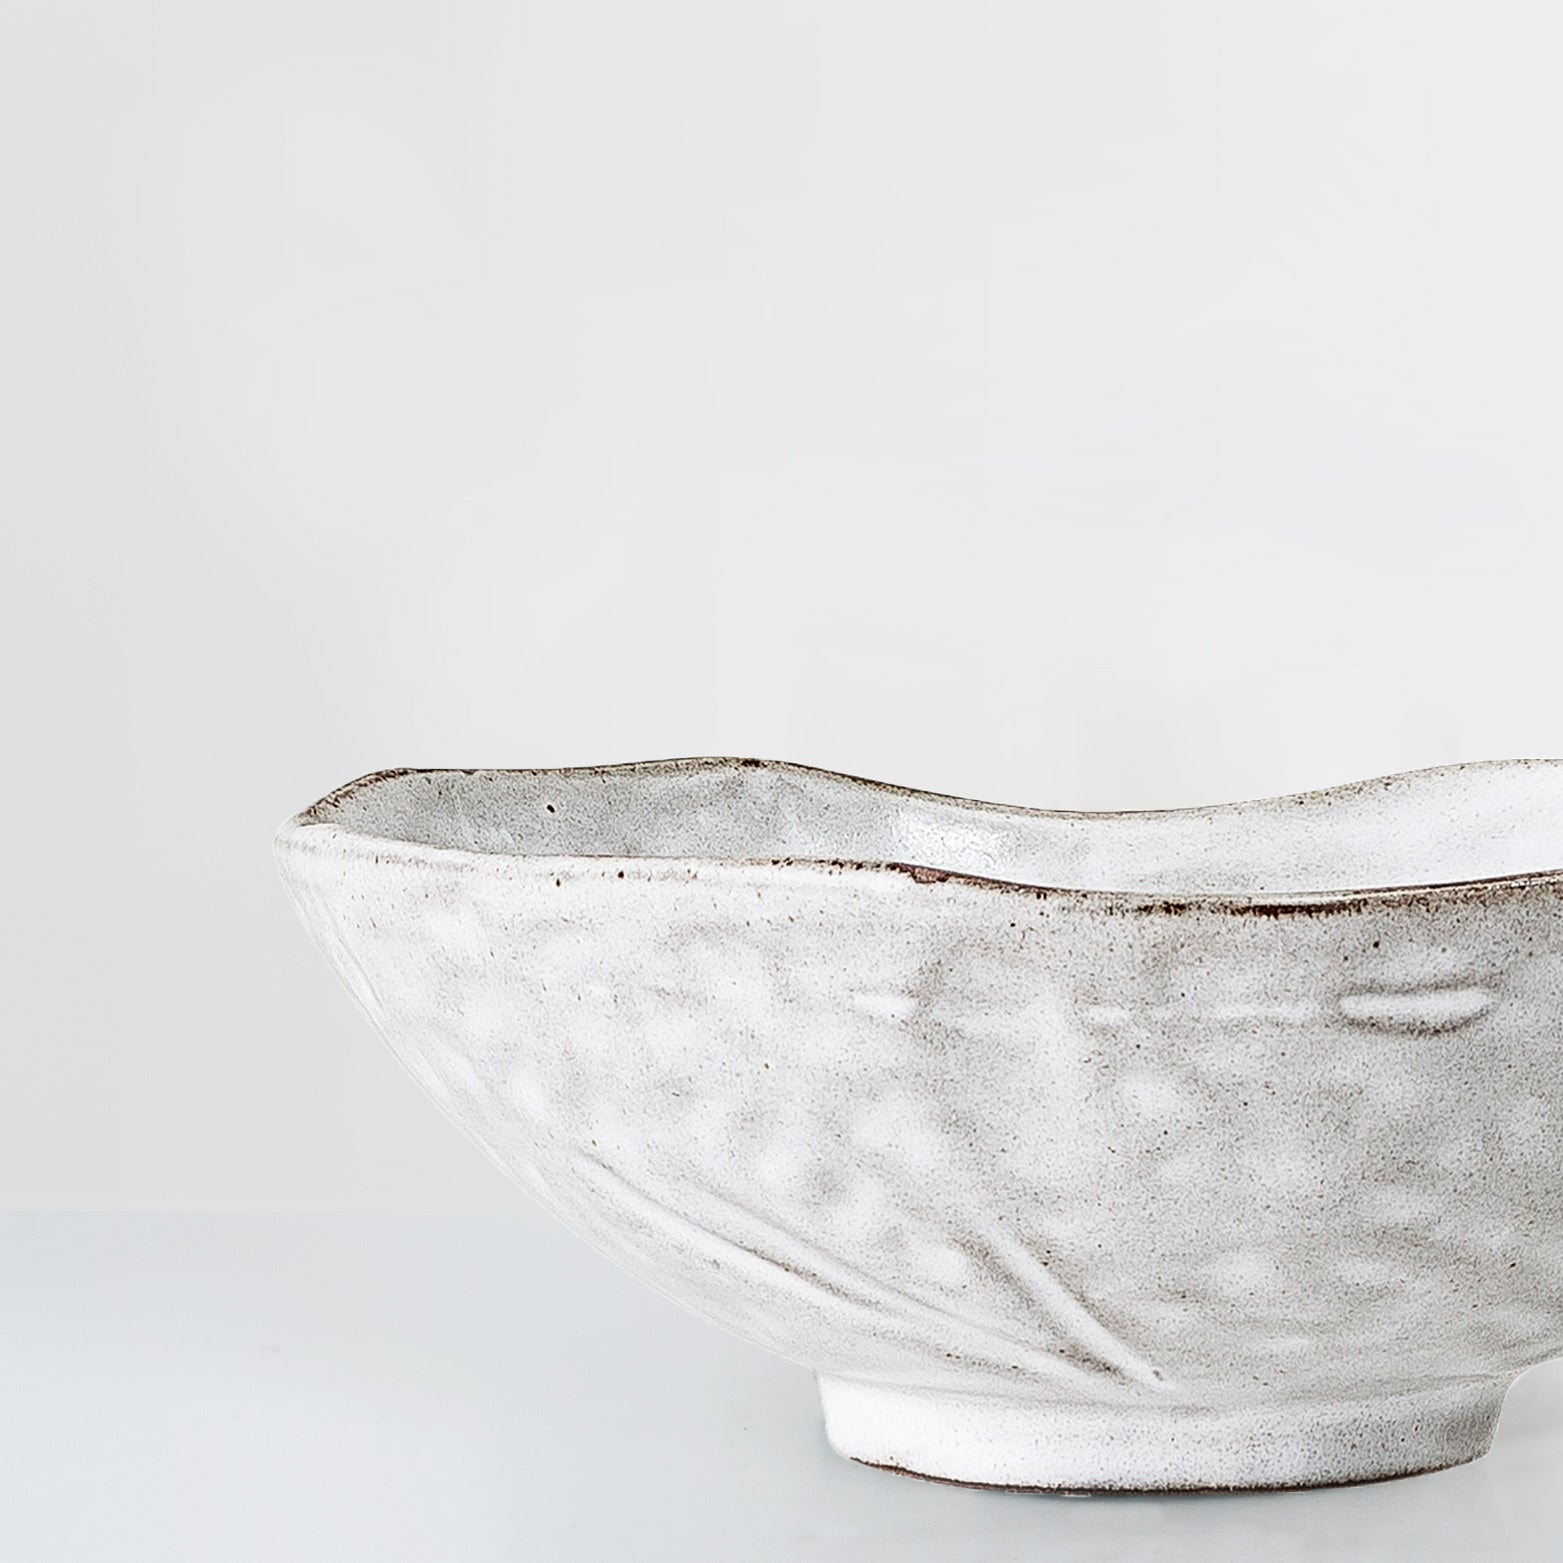 Cammelia Handmade pale grey bowl